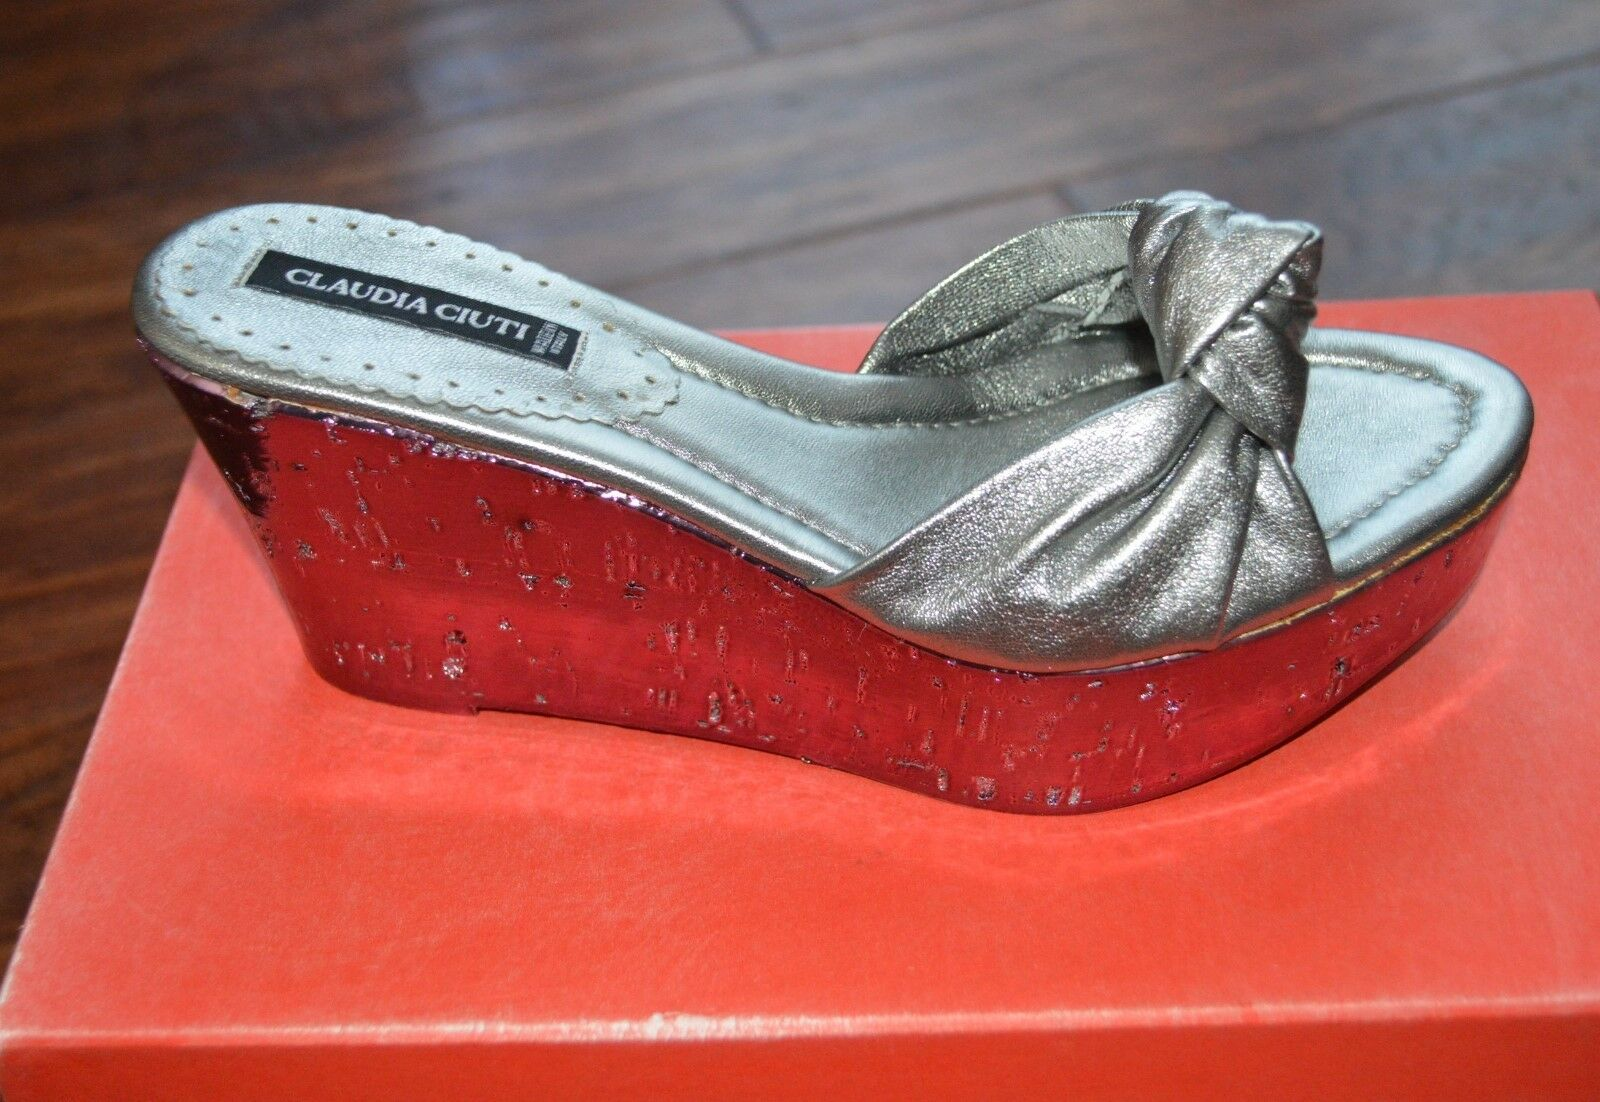 46f3ba6f89bd5 Claudia Womens Buttery Wedge shoes Size 6 US Platform Silver 465 ...